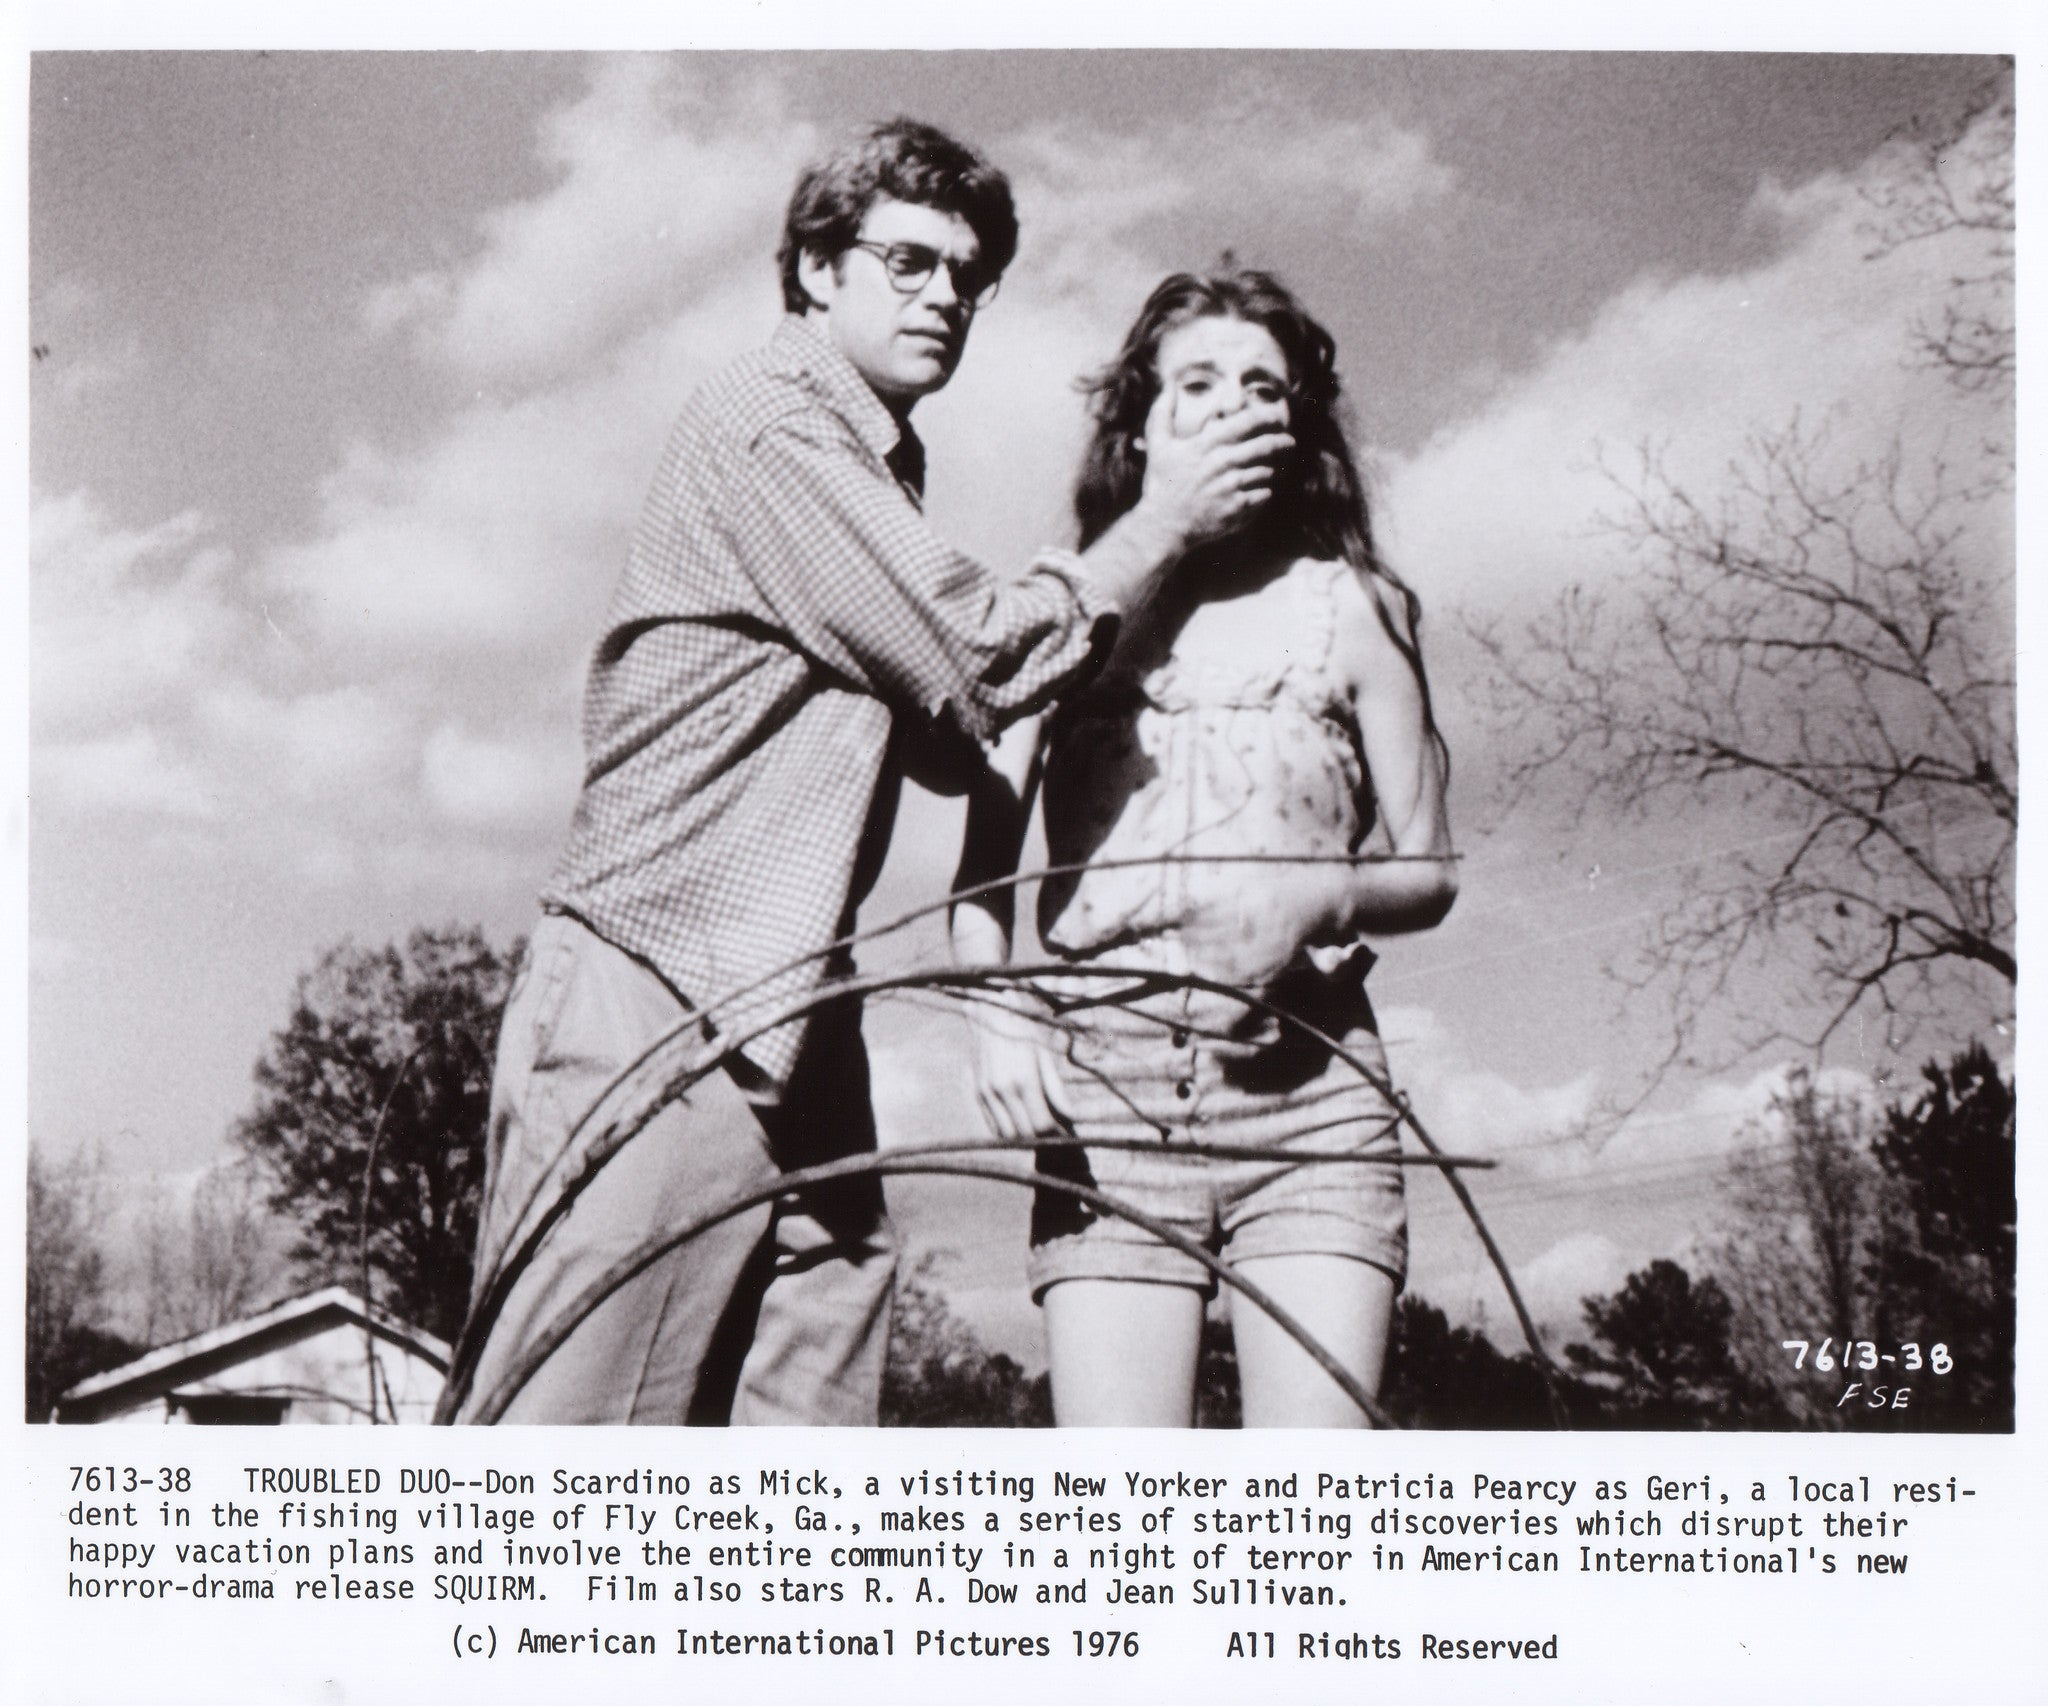 SQUIRM - US promo stills